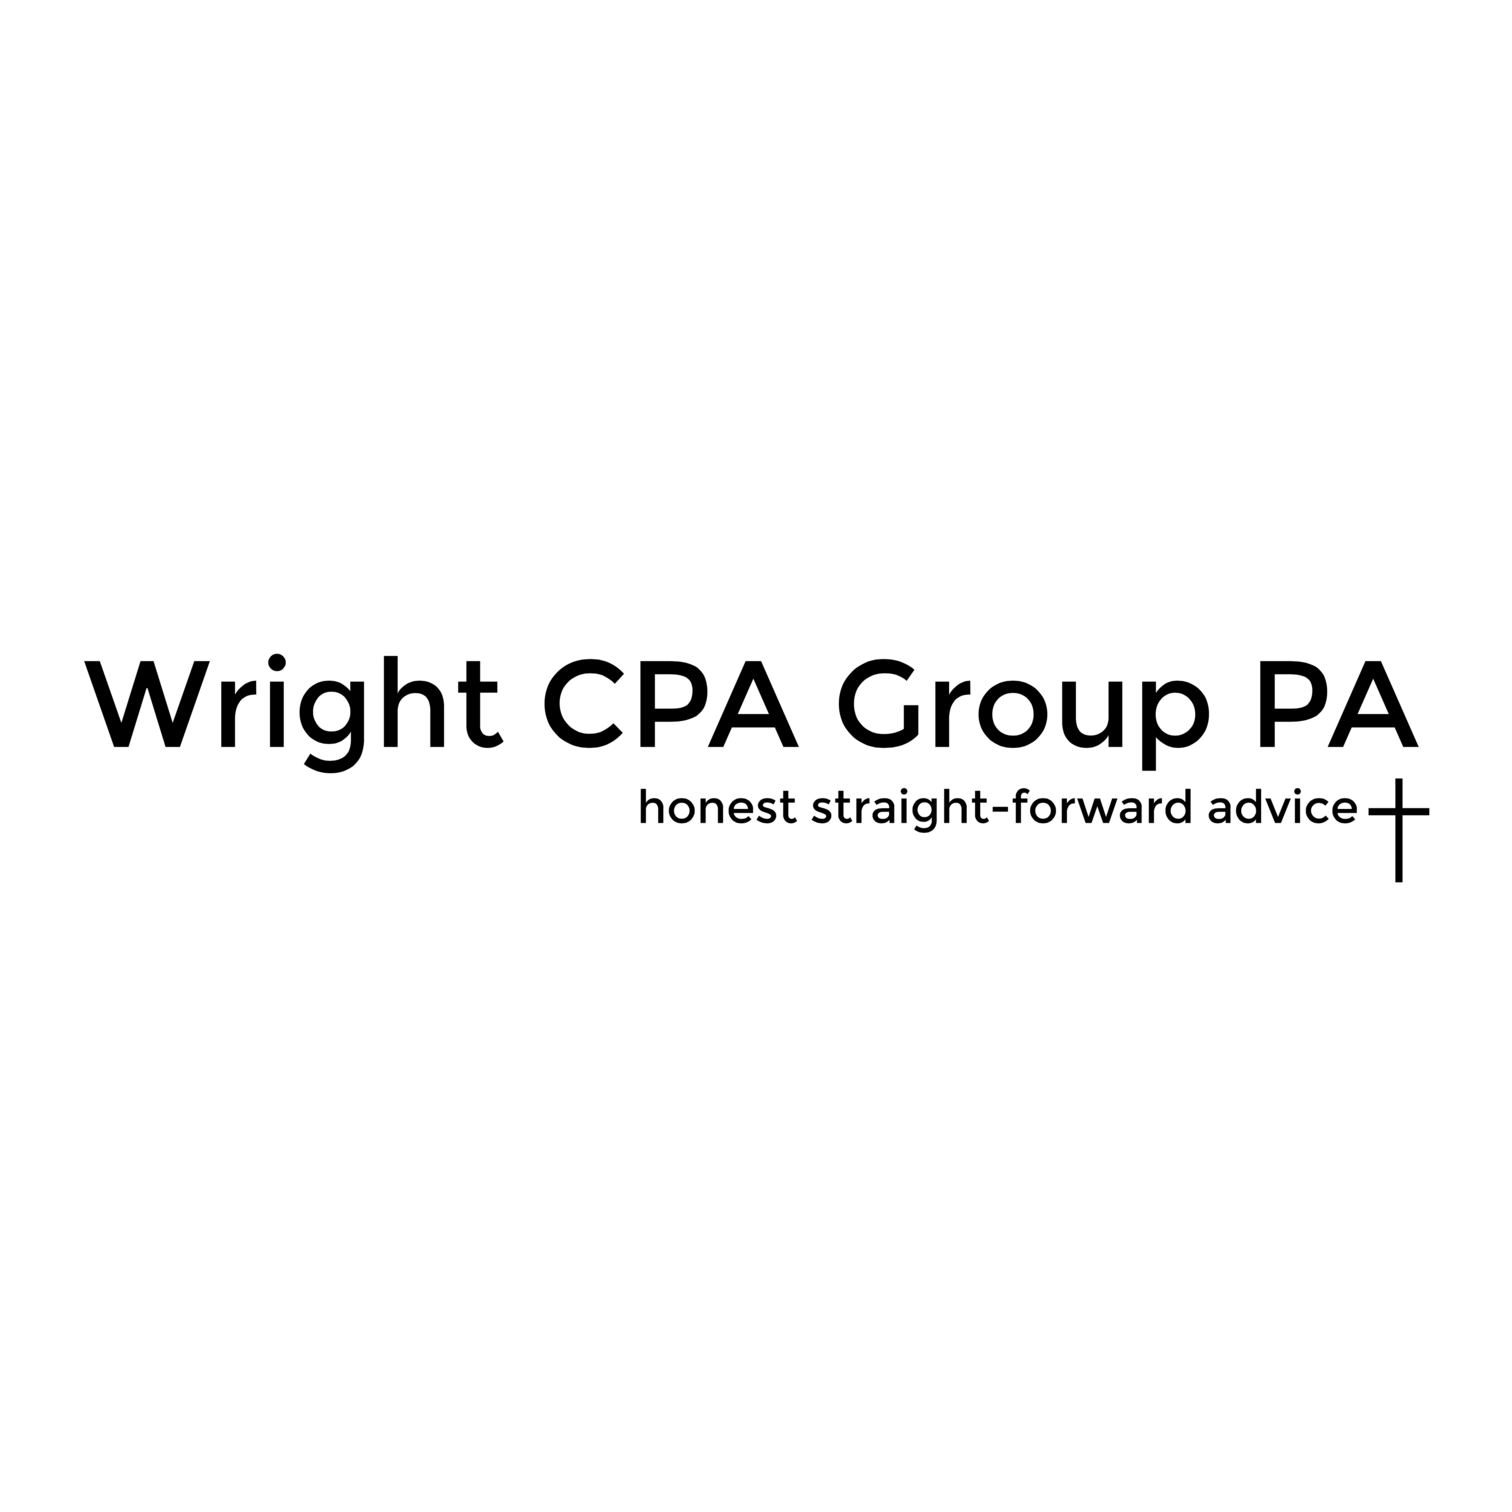 wright cpa.png